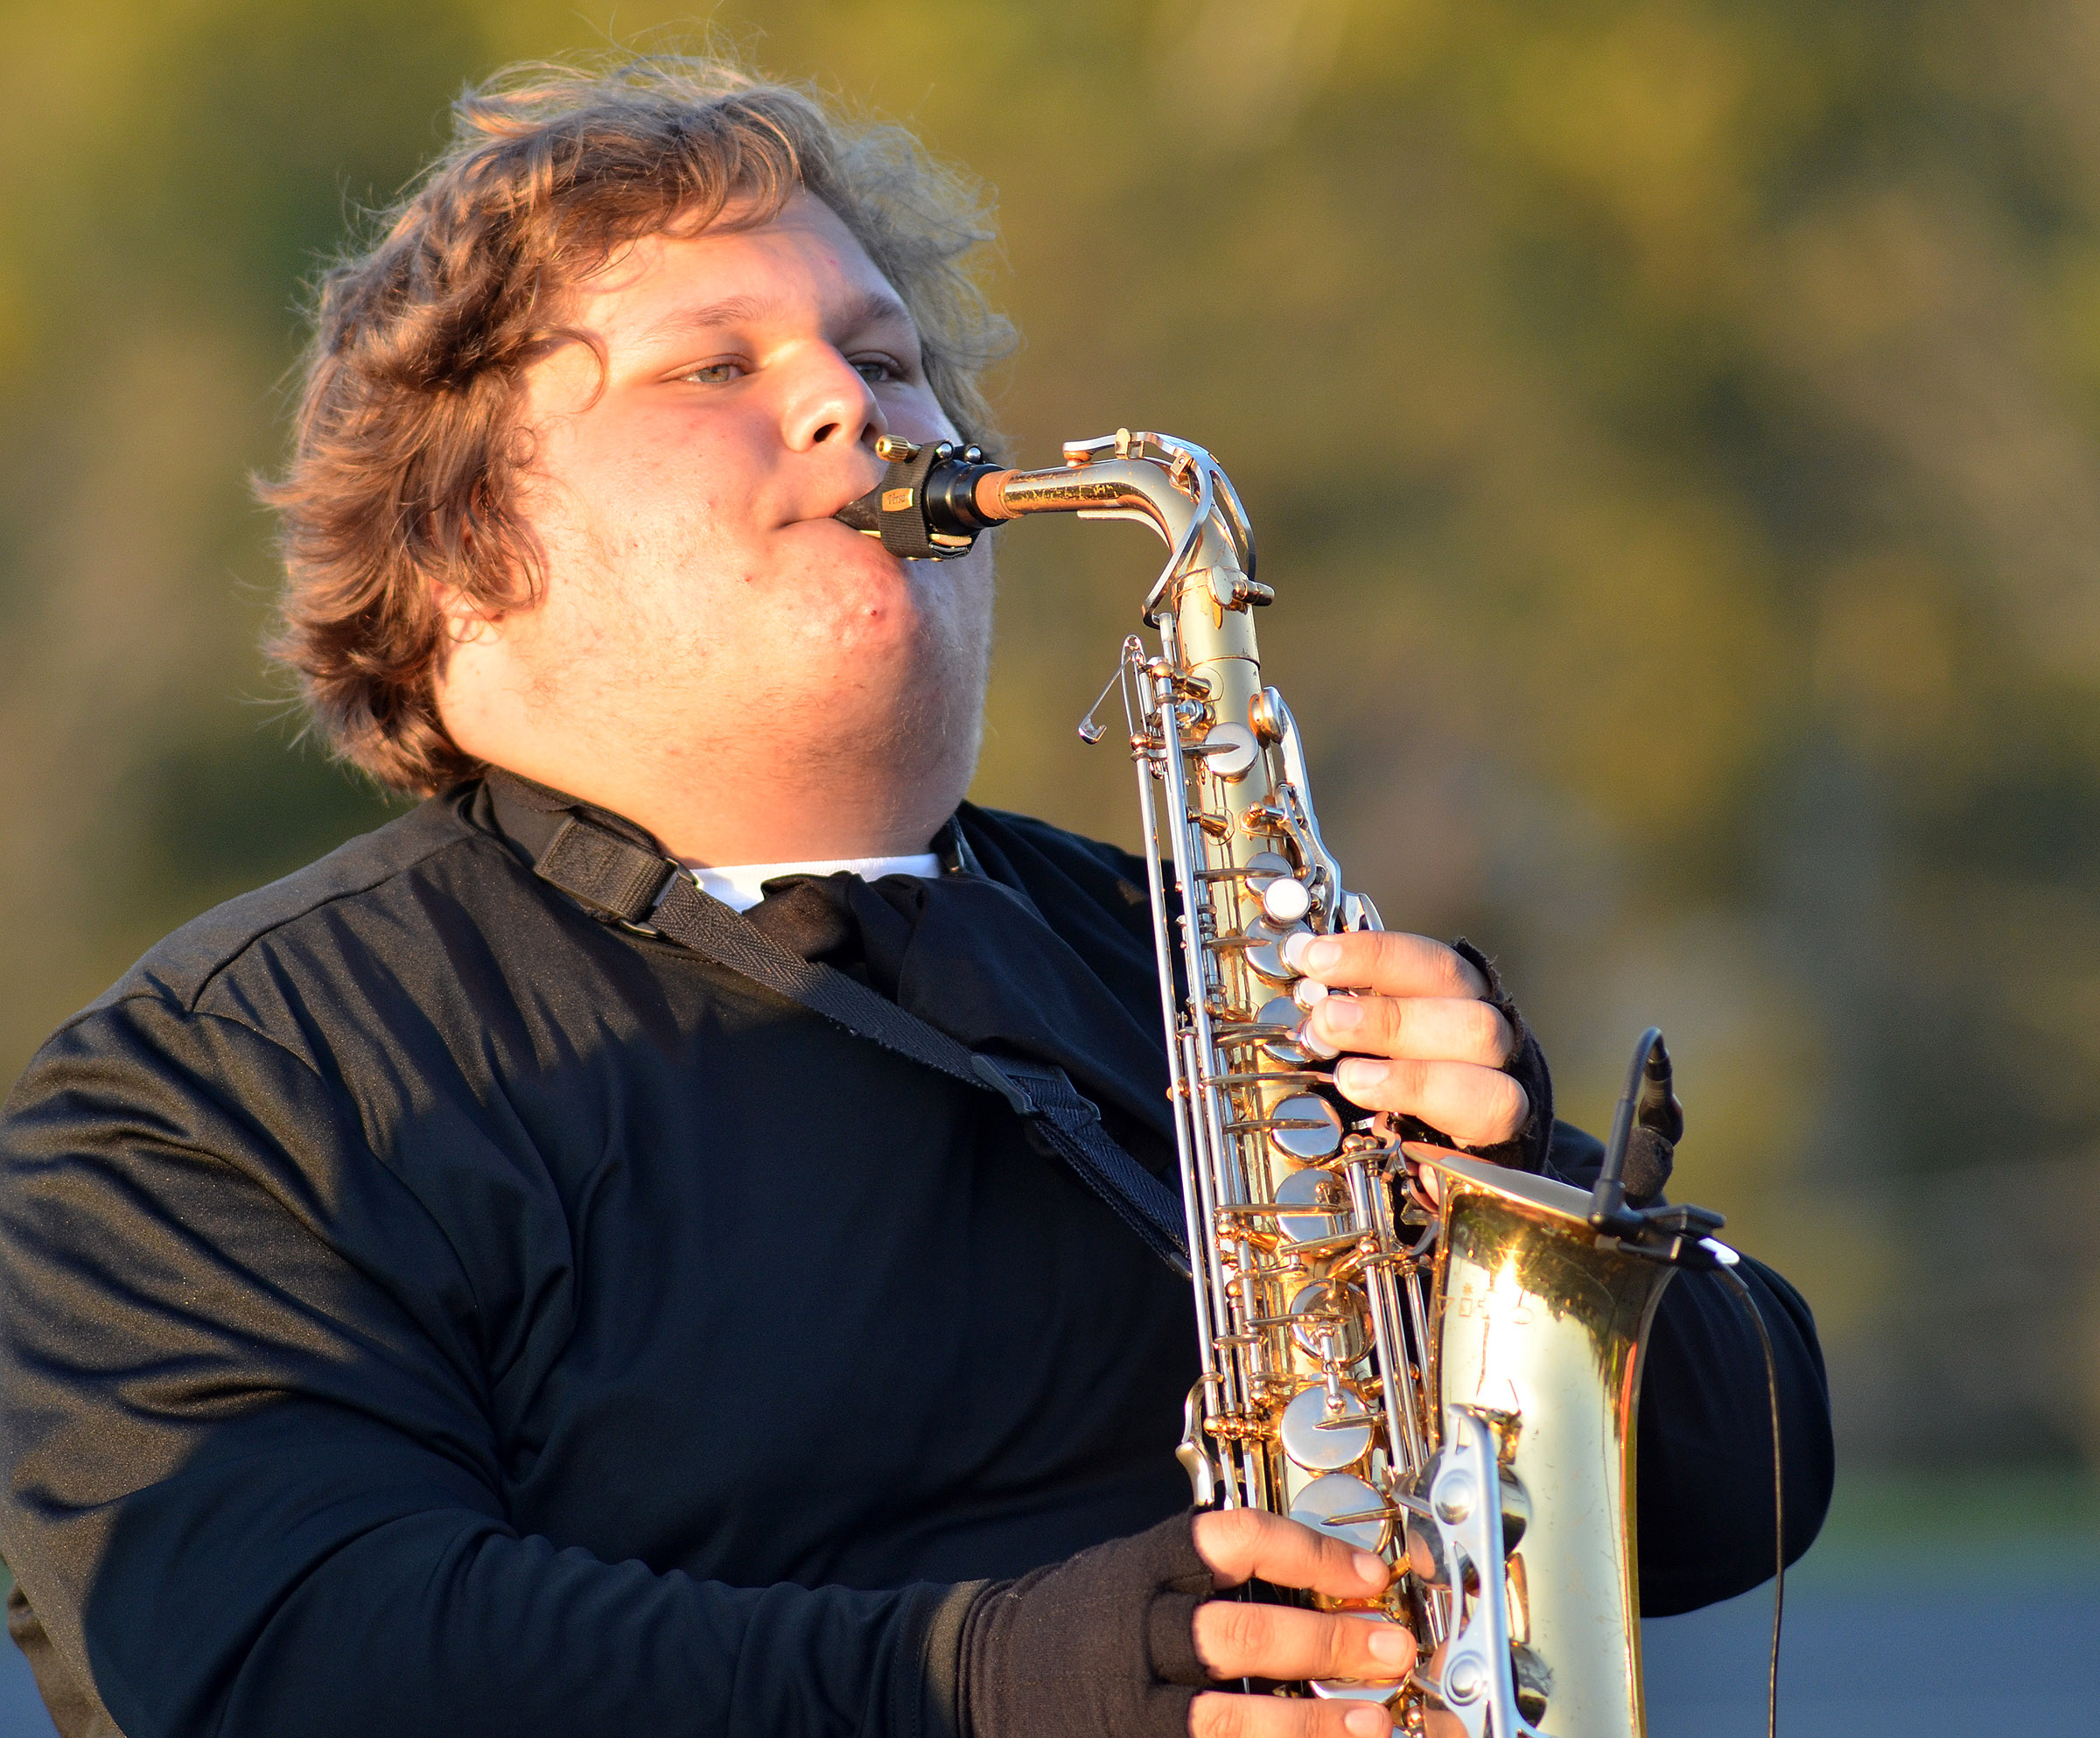 CHS junior Randy Harris plays saxophone.